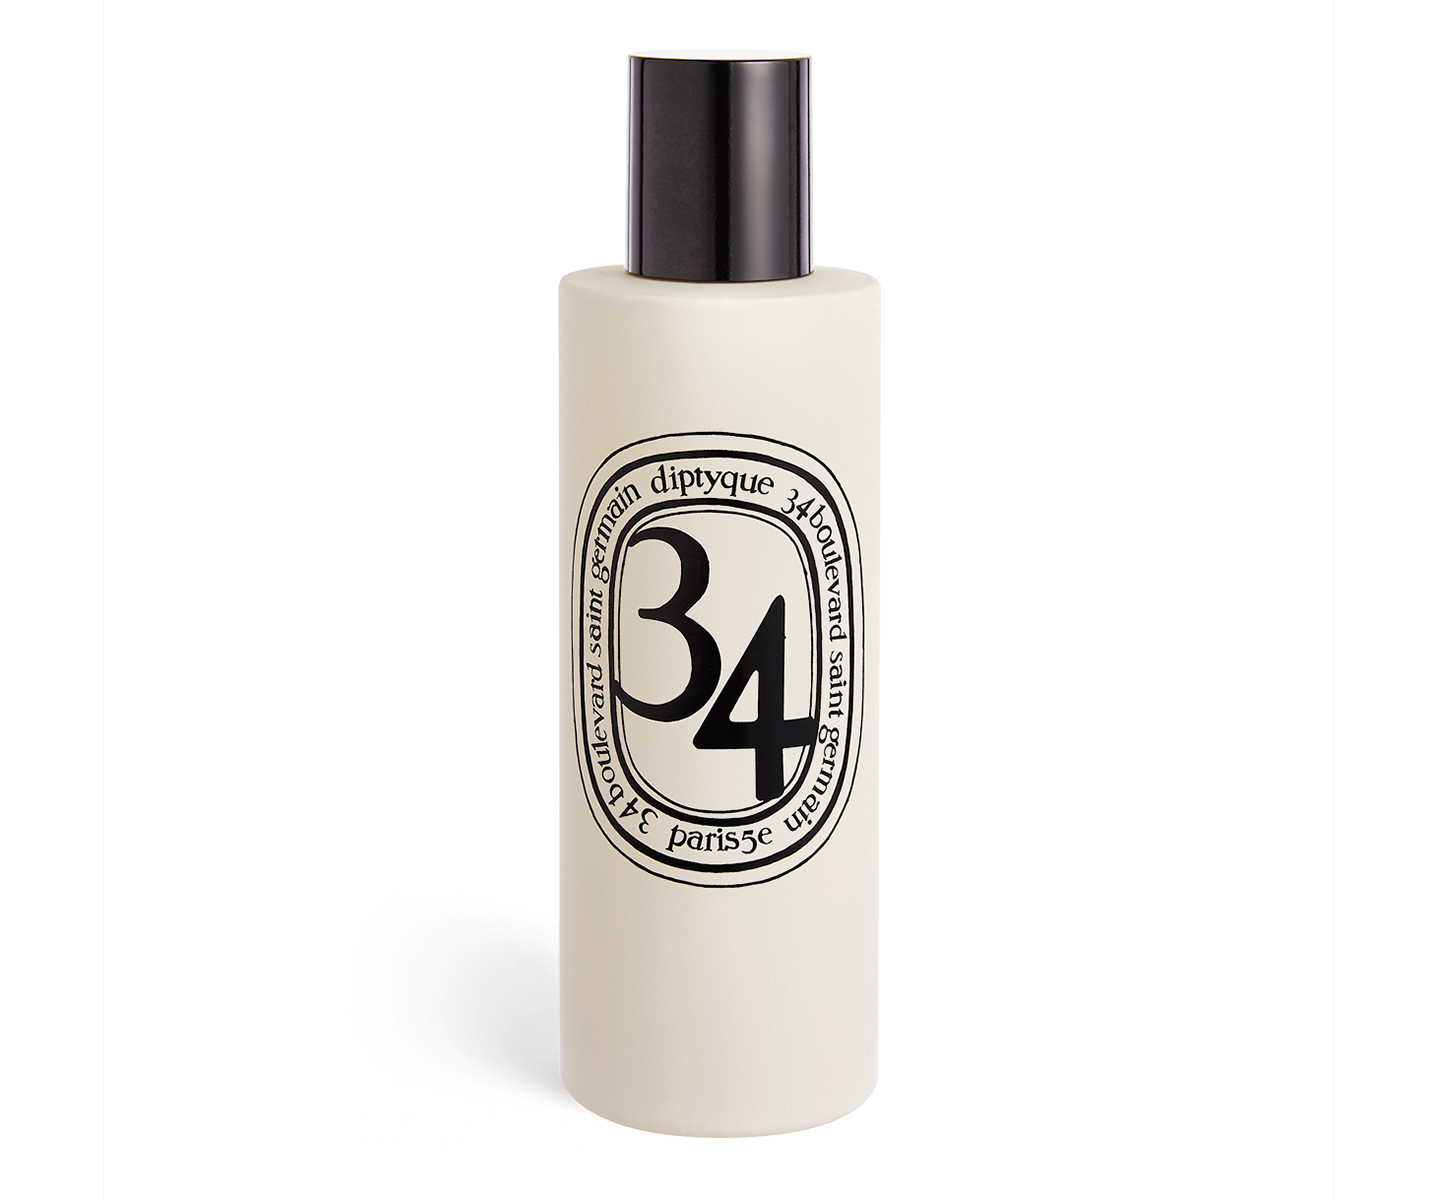 34 boulevard Saint Germain Room spray